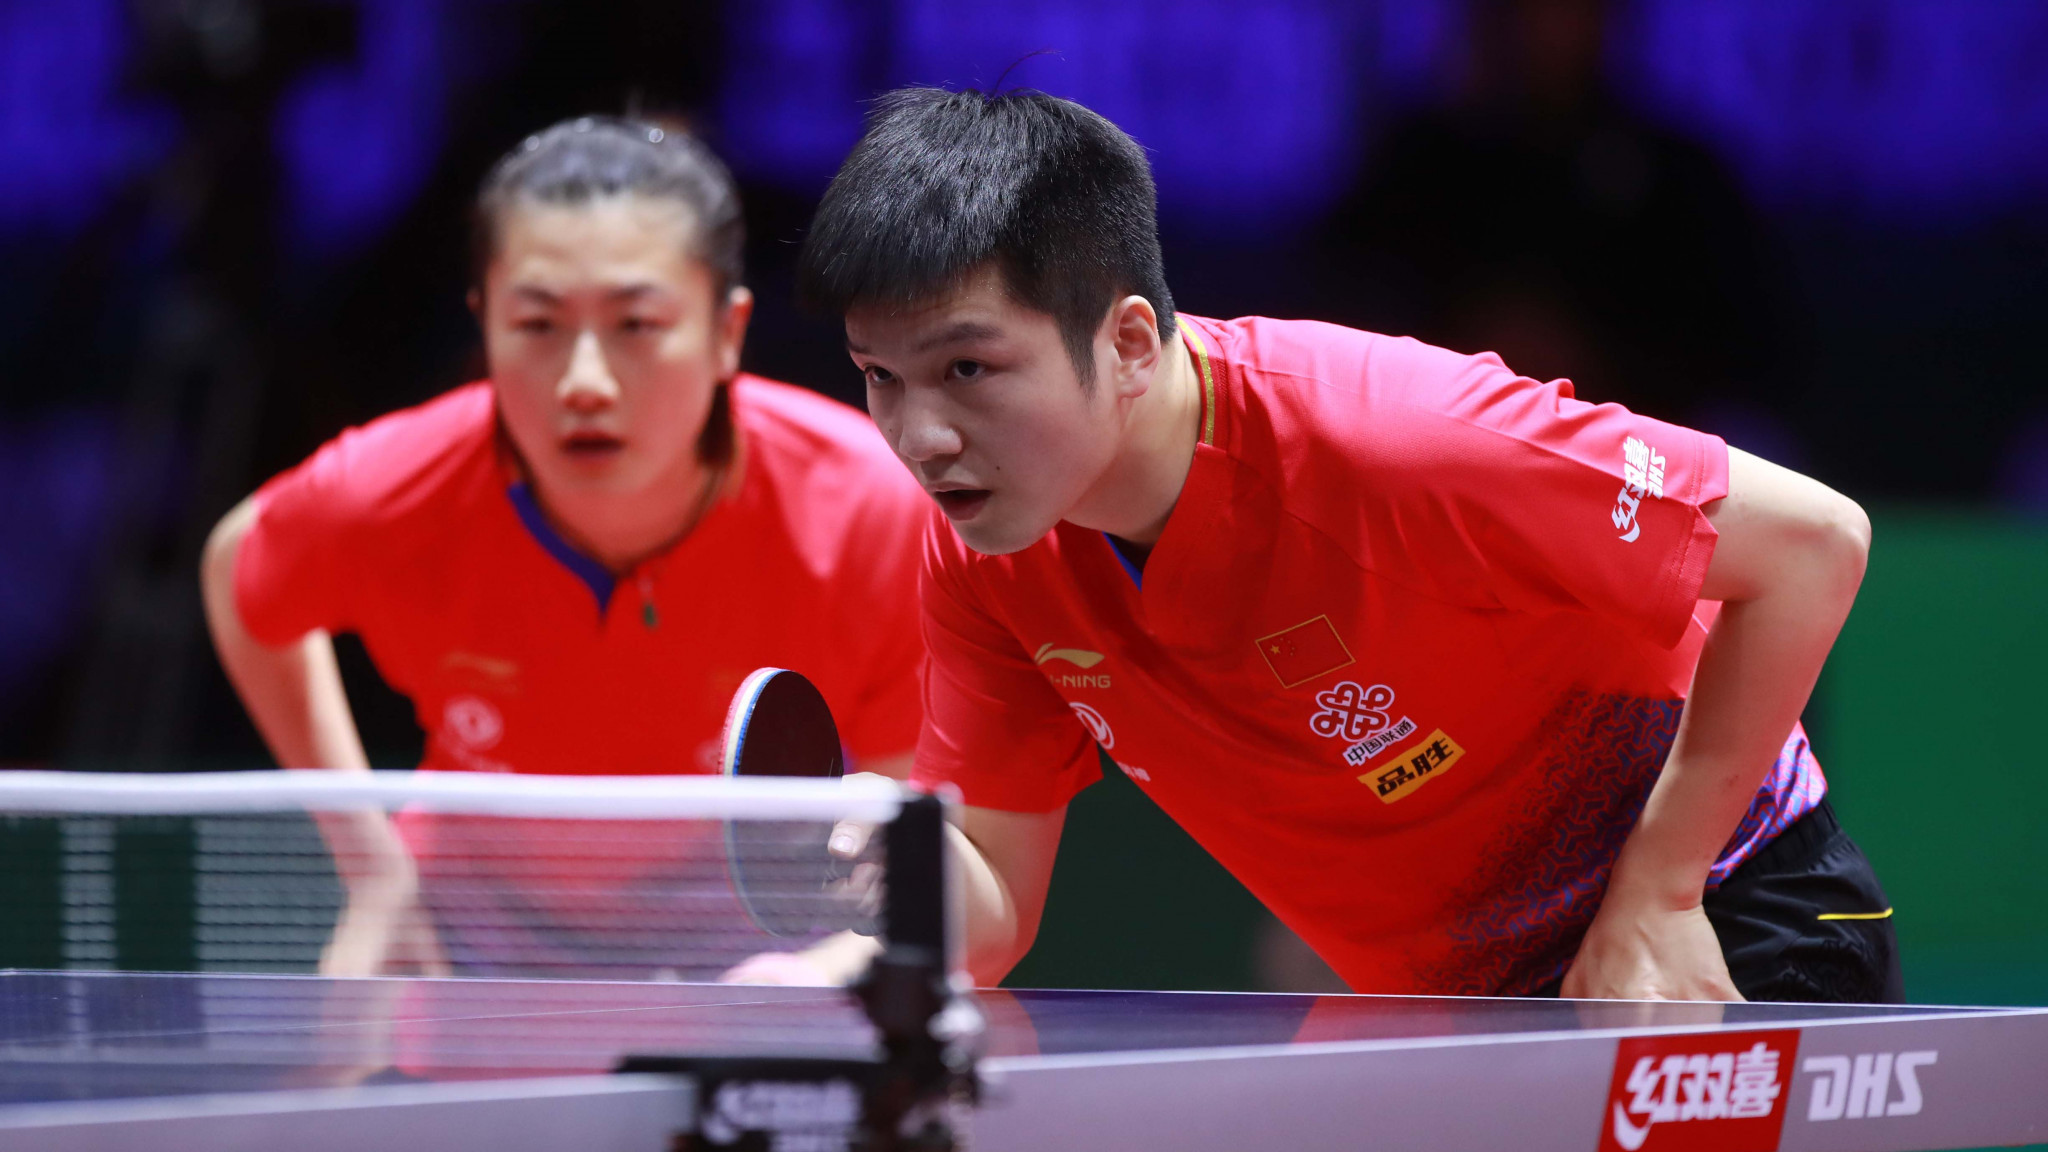 Top singles seeds Fan Zhendong and Ding Ning won their opening mixed doubles contest on the first day of the ITTF World Championships in Budapest ©ITTF